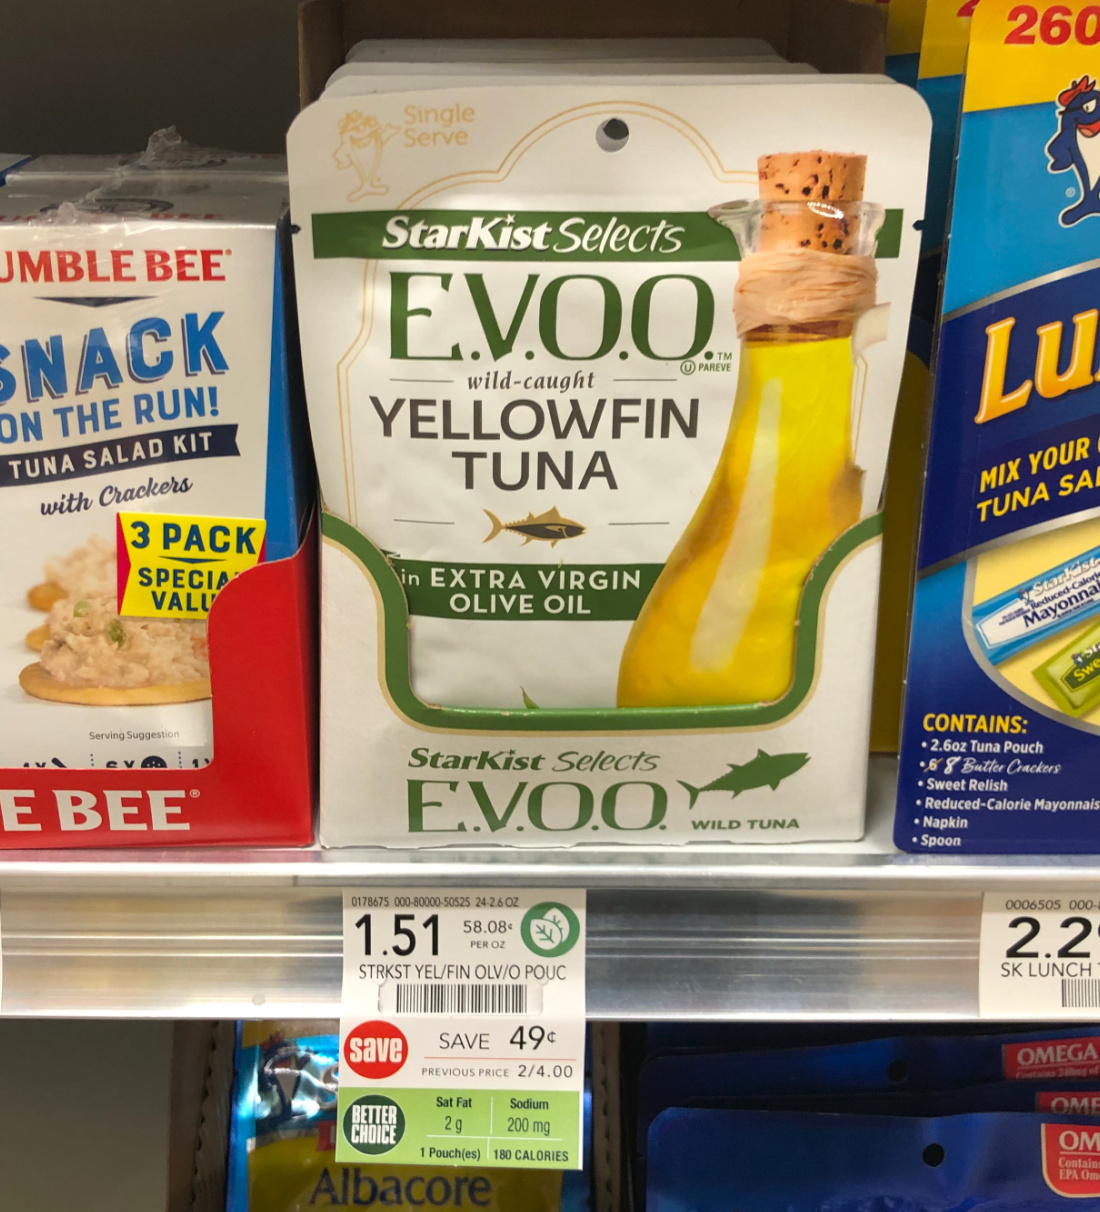 Starkist Selects E.V.O.O. Yellowfin Tuna As Low As 76¢ At Publix on I Heart Publix